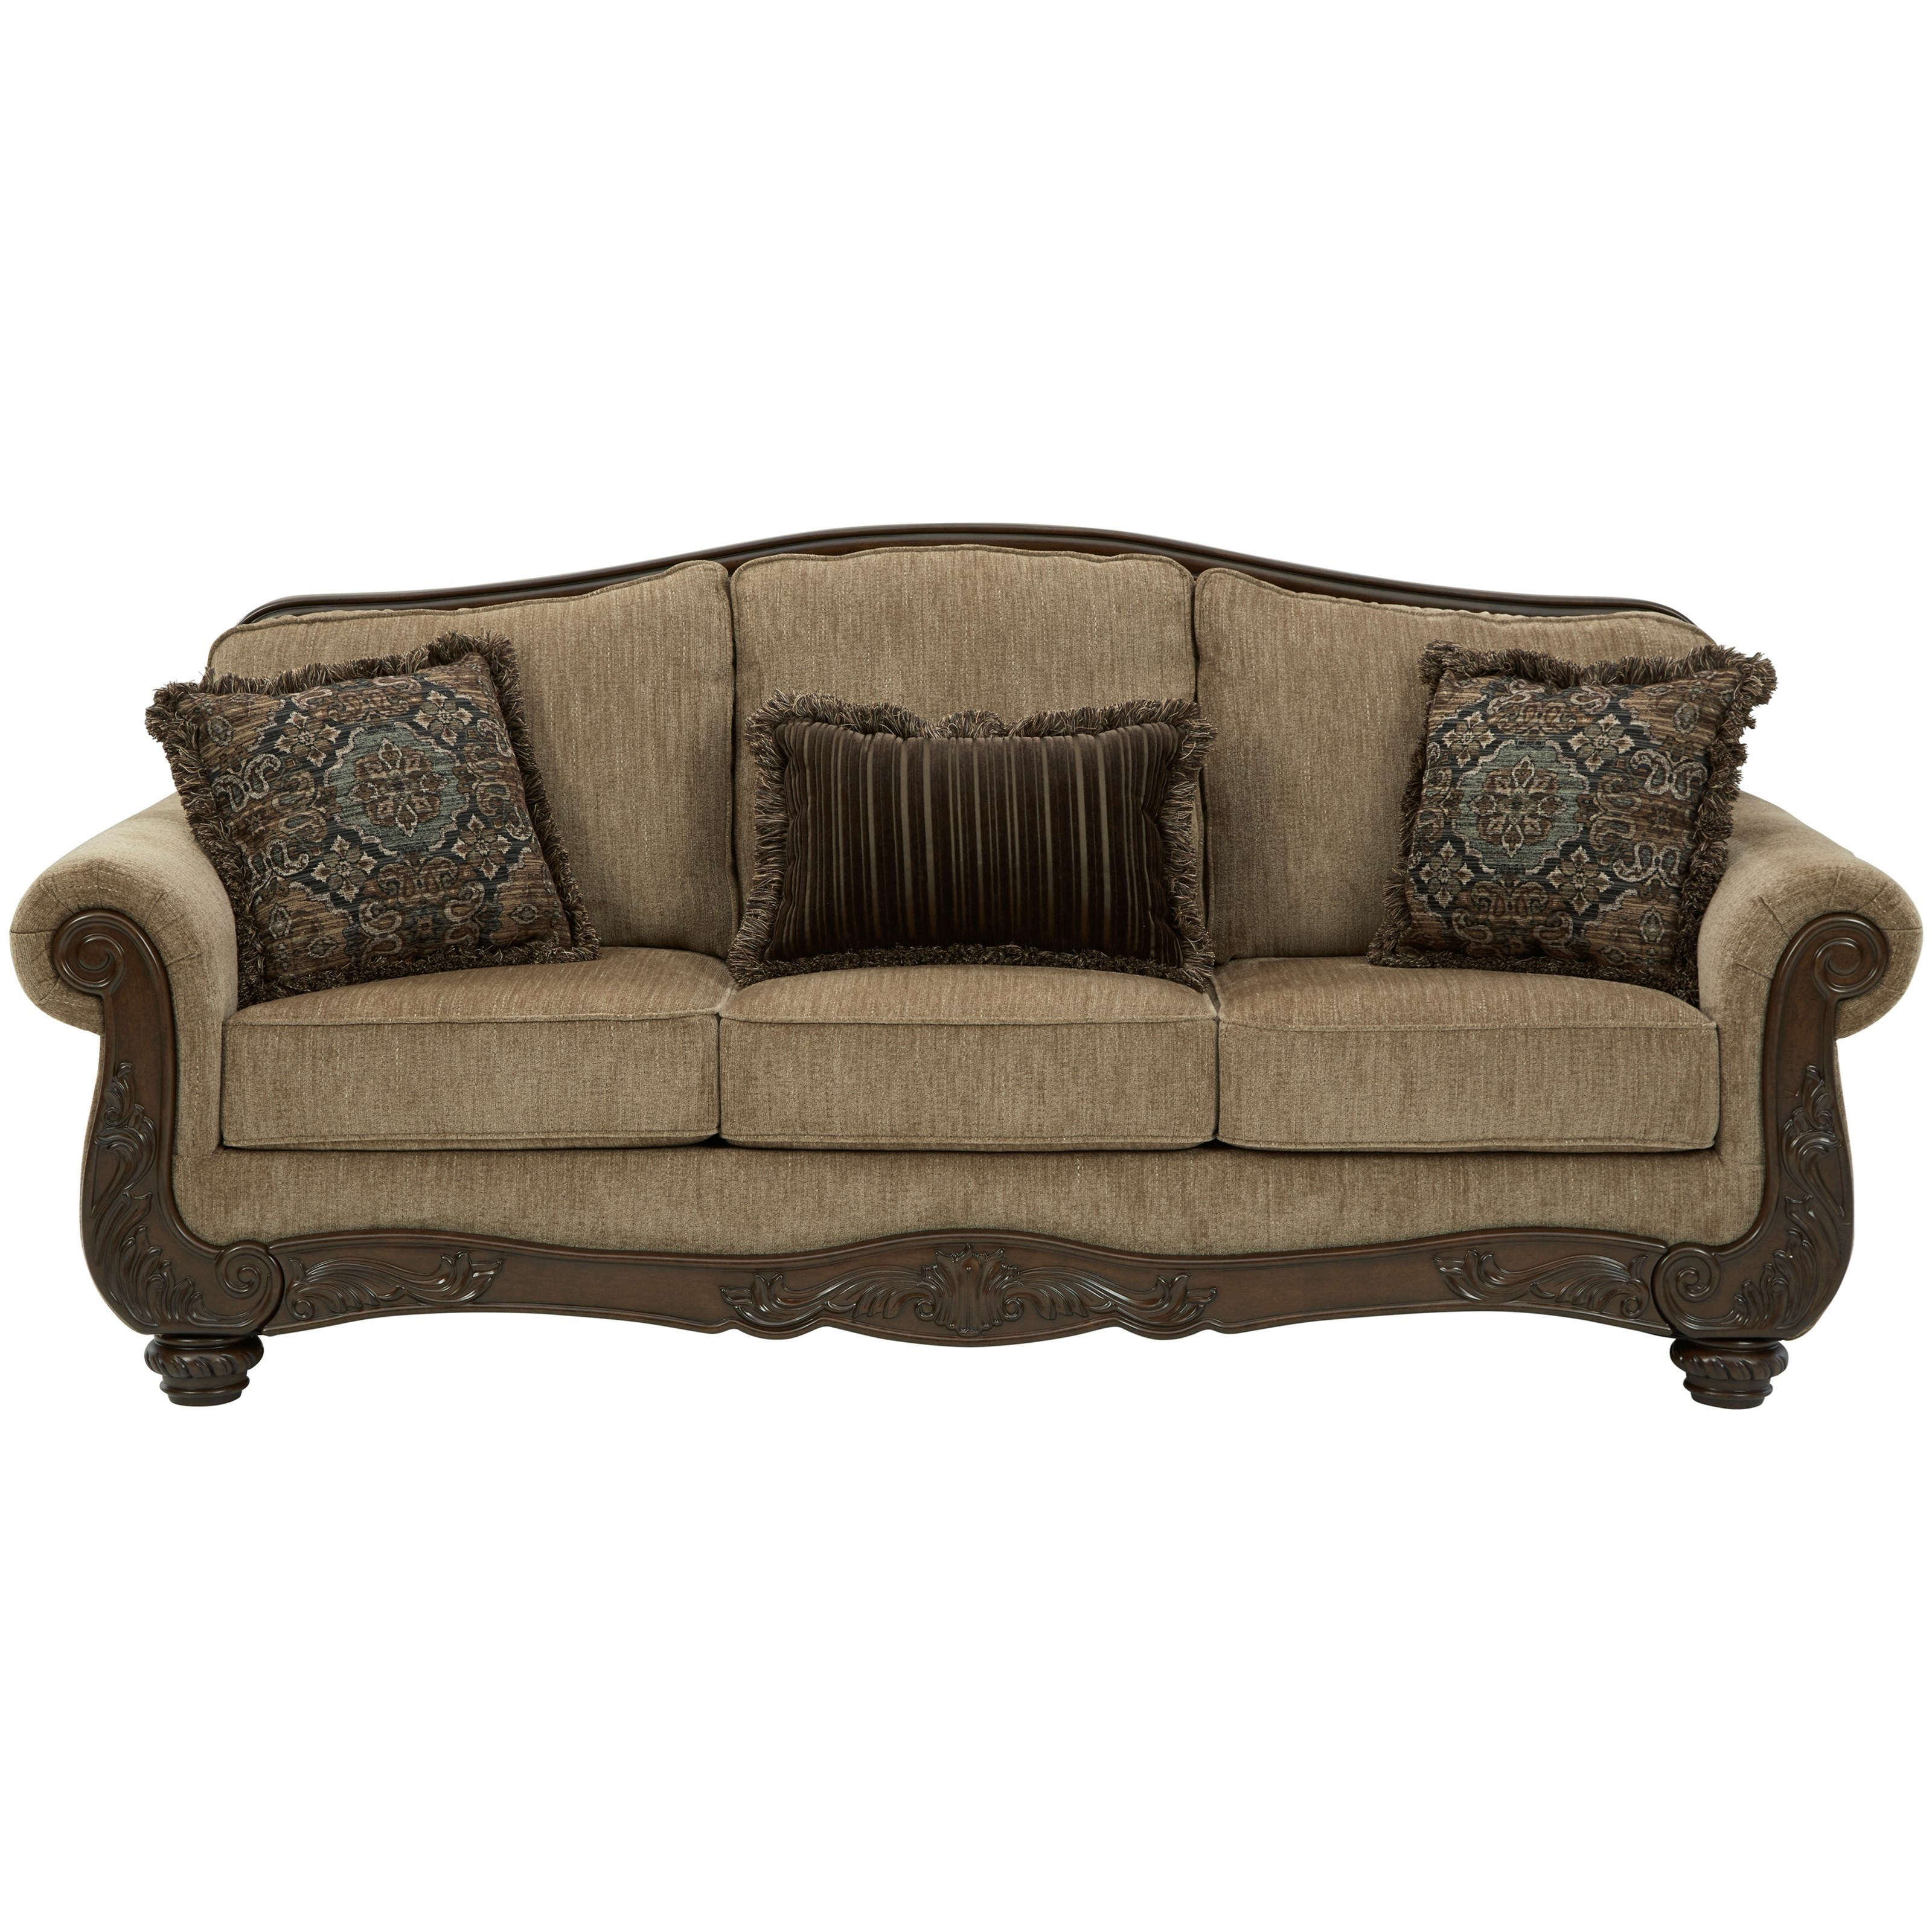 Briaroaks Sofa by Benchcraft at Zak's Warehouse Clearance Center